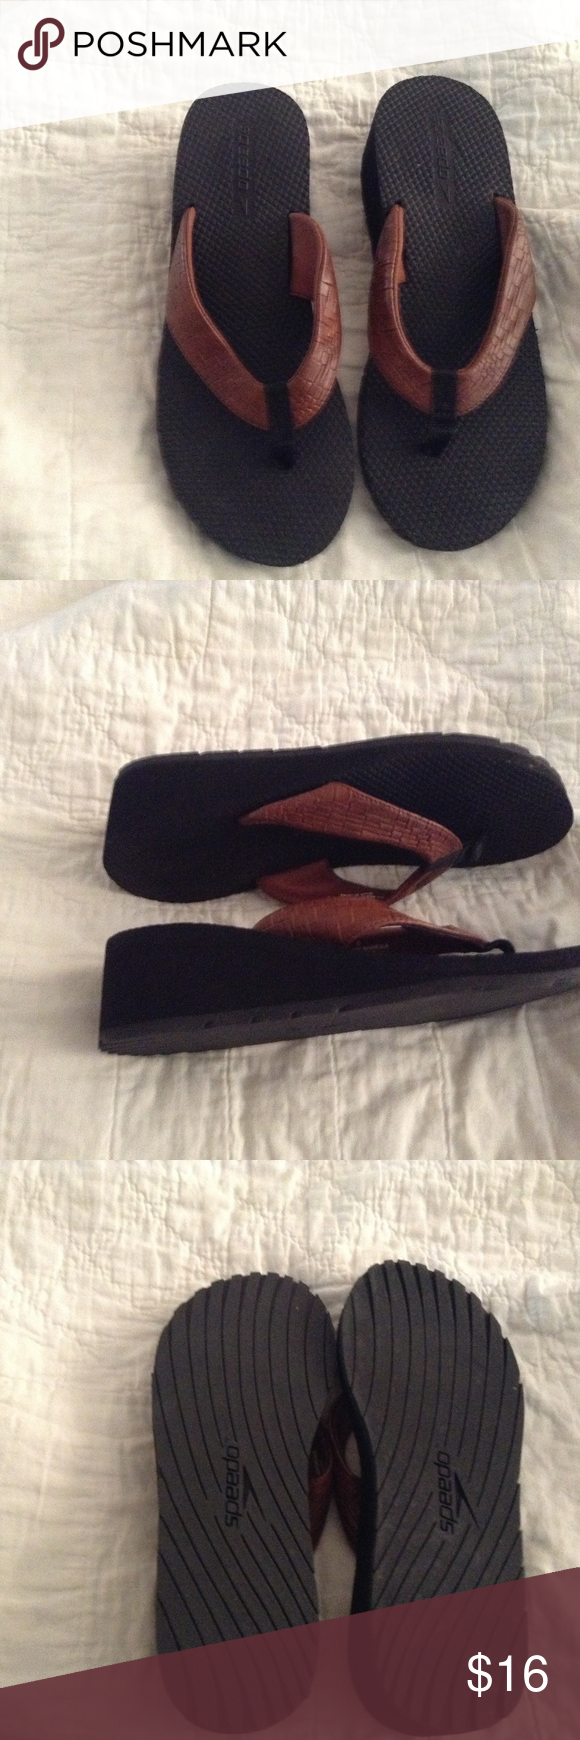 7d0a7128ed75f8 Speedo Thong Shoes NWOT Speedo thong flip flop shoes. Size 8. Never worn  outside. Cute wedge heel. Speedo Shoes Sandals